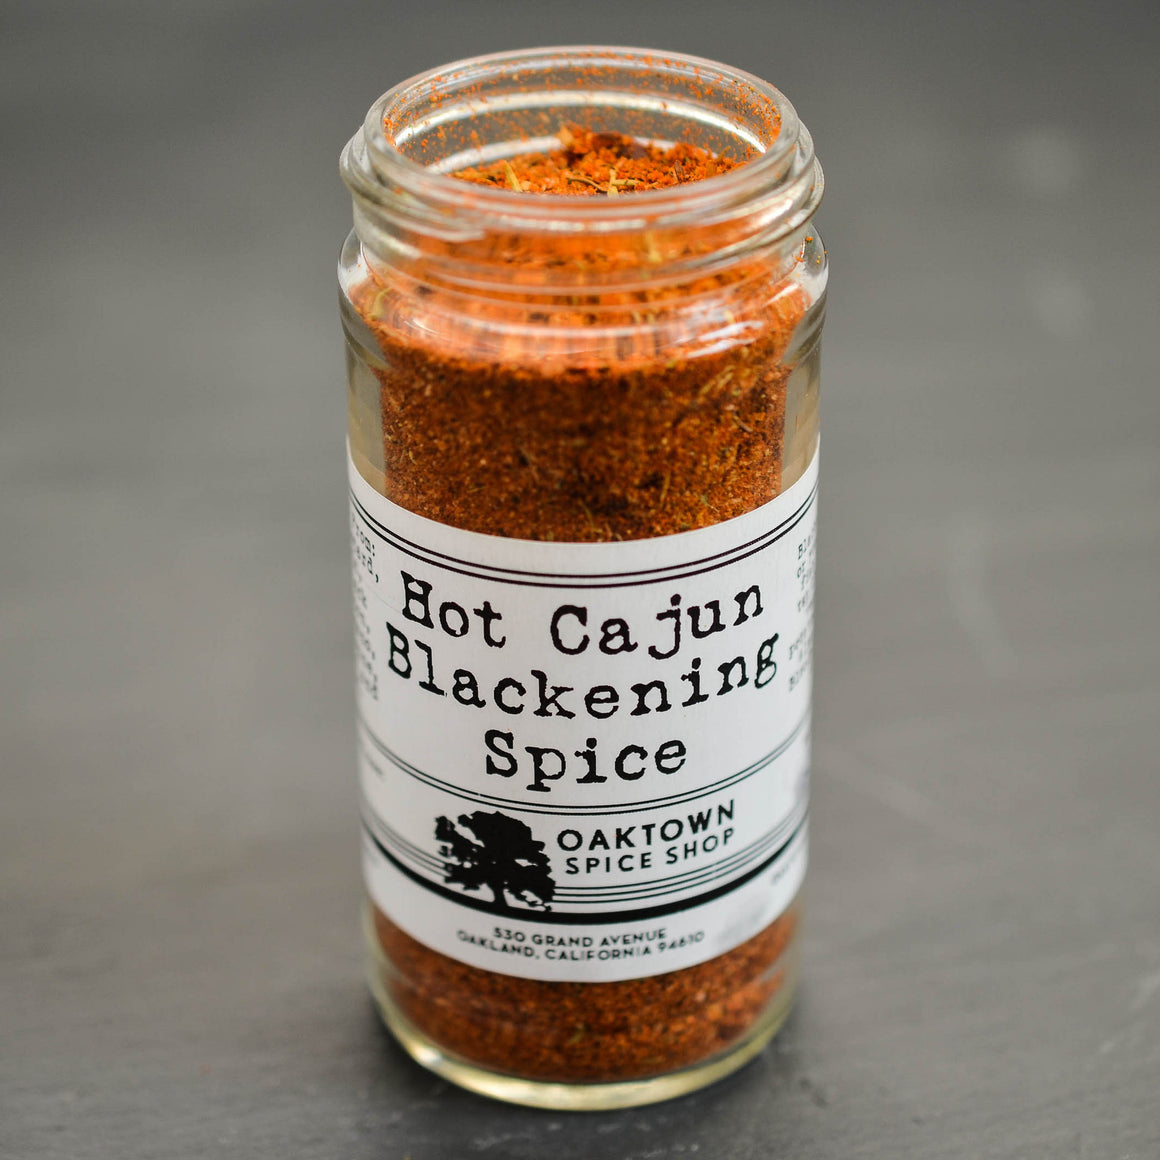 Hot Cajun Blackening Seasoning